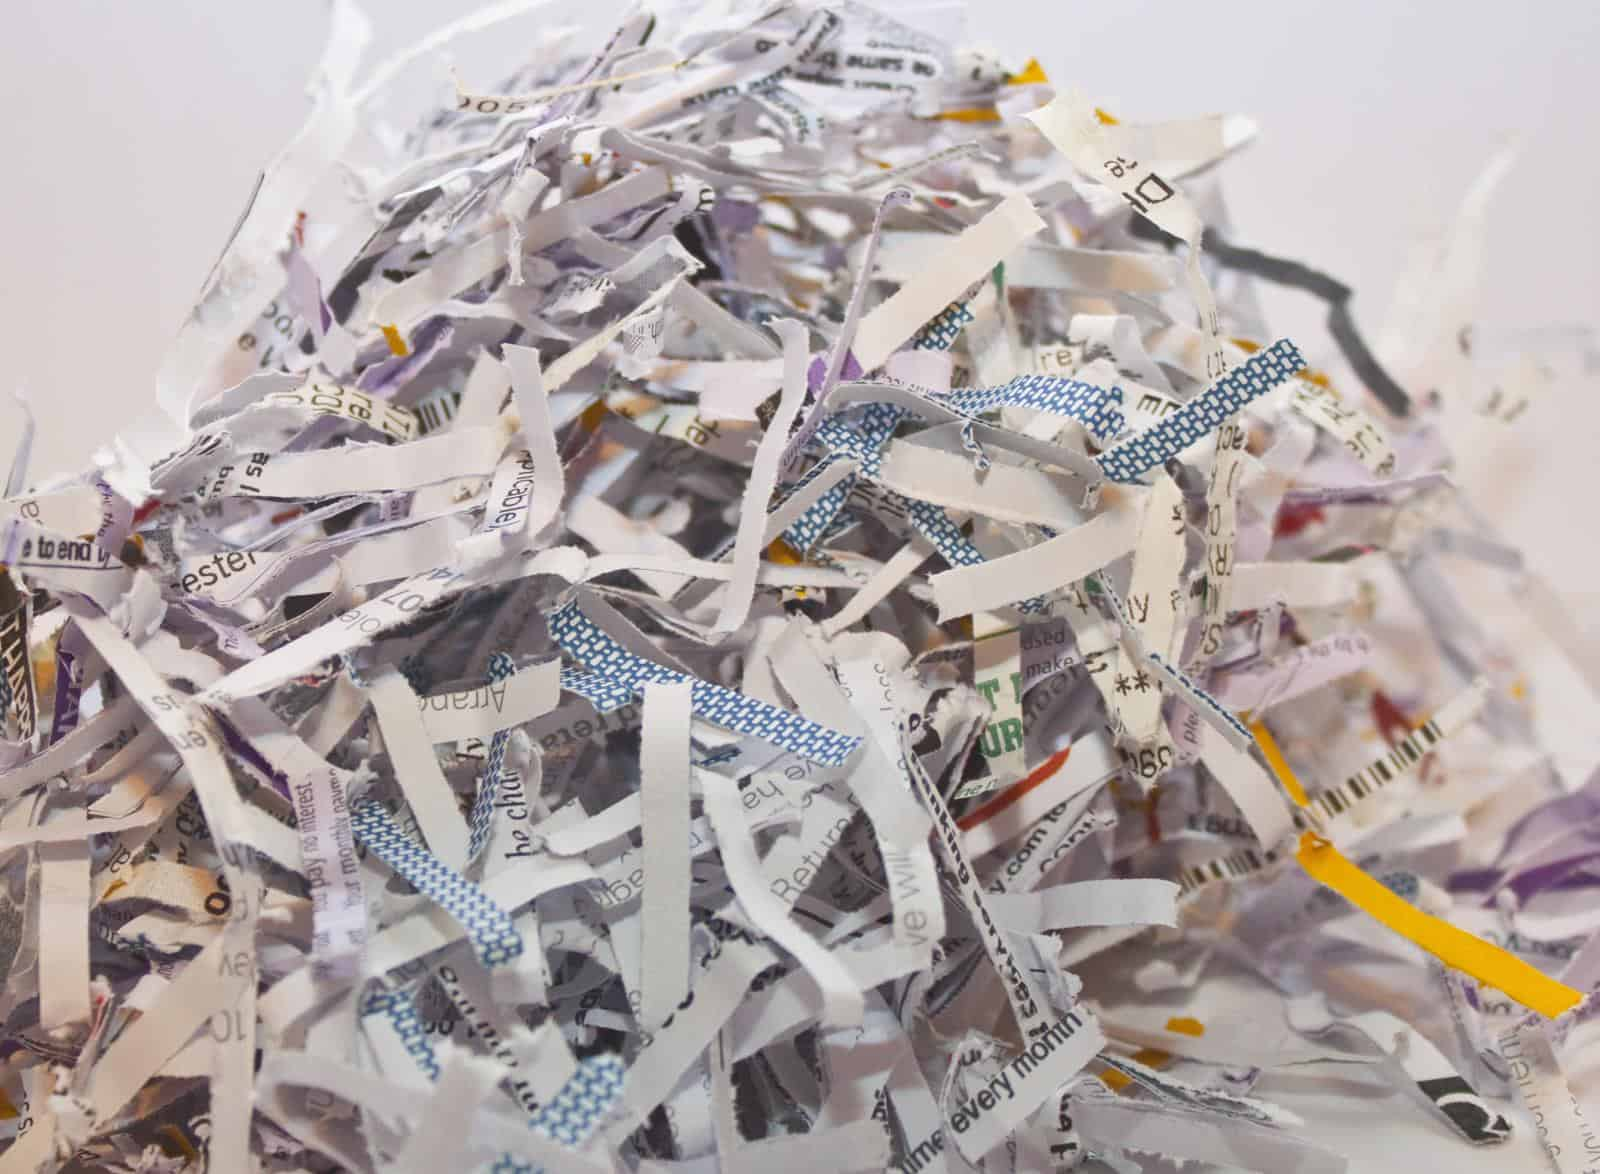 Free Paper Shredding Event Offered in San Marcos on April 14